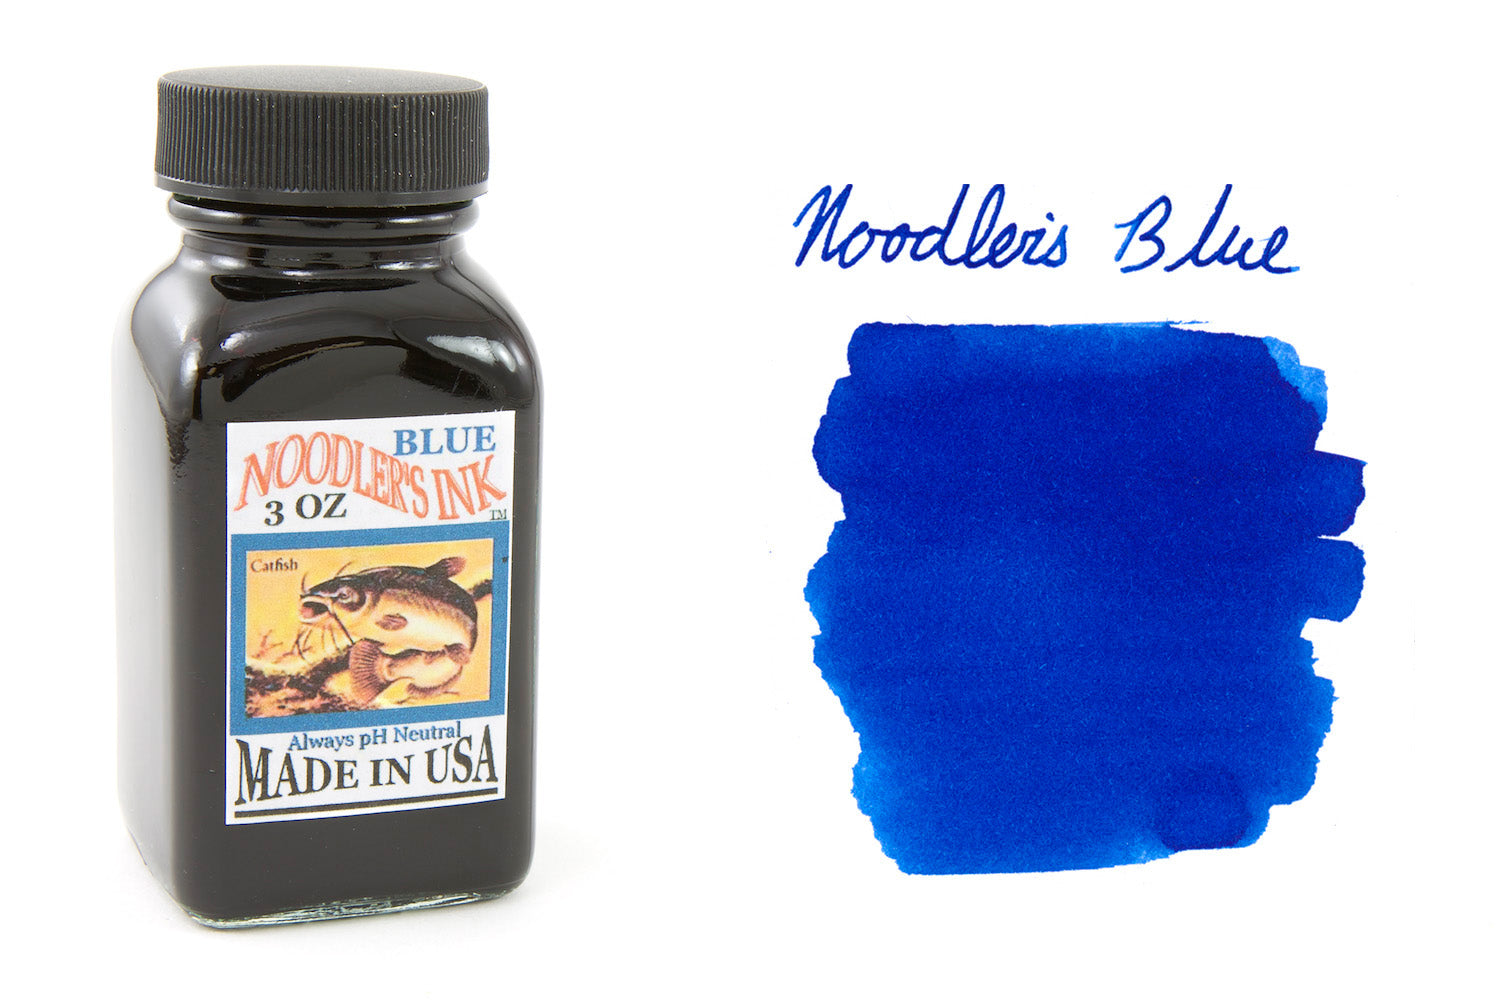 Noodler's Blue - 3oz Bottled Ink